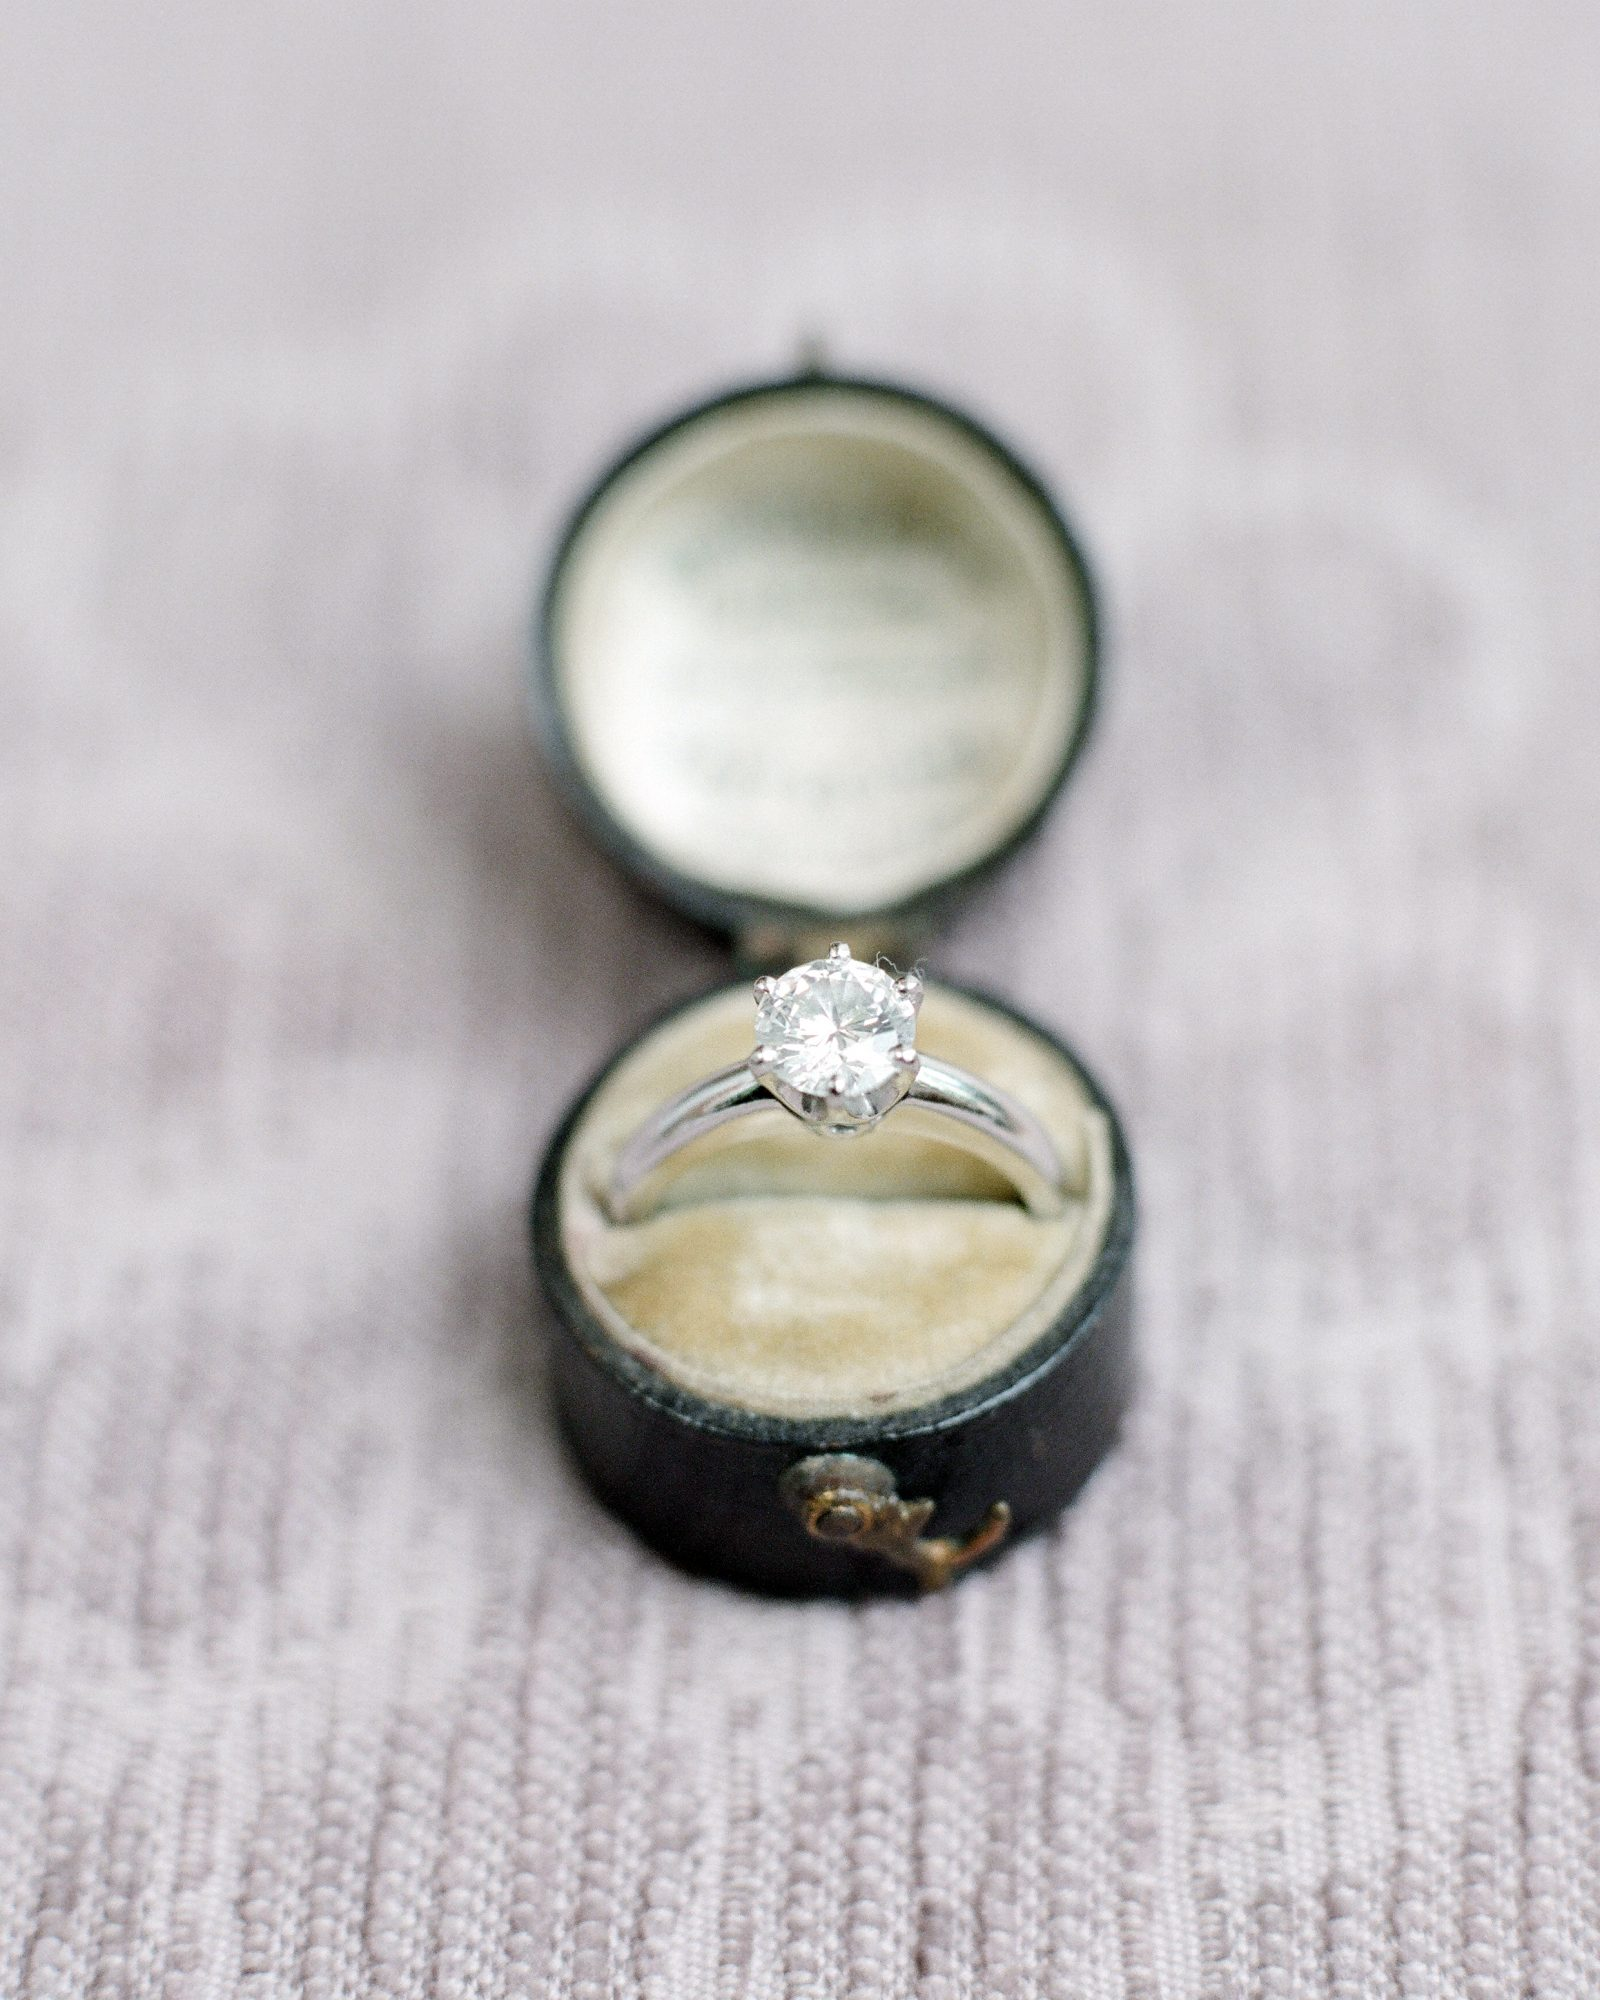 brittany-jeff-wedding-rings-017-s111415-0714.jpg